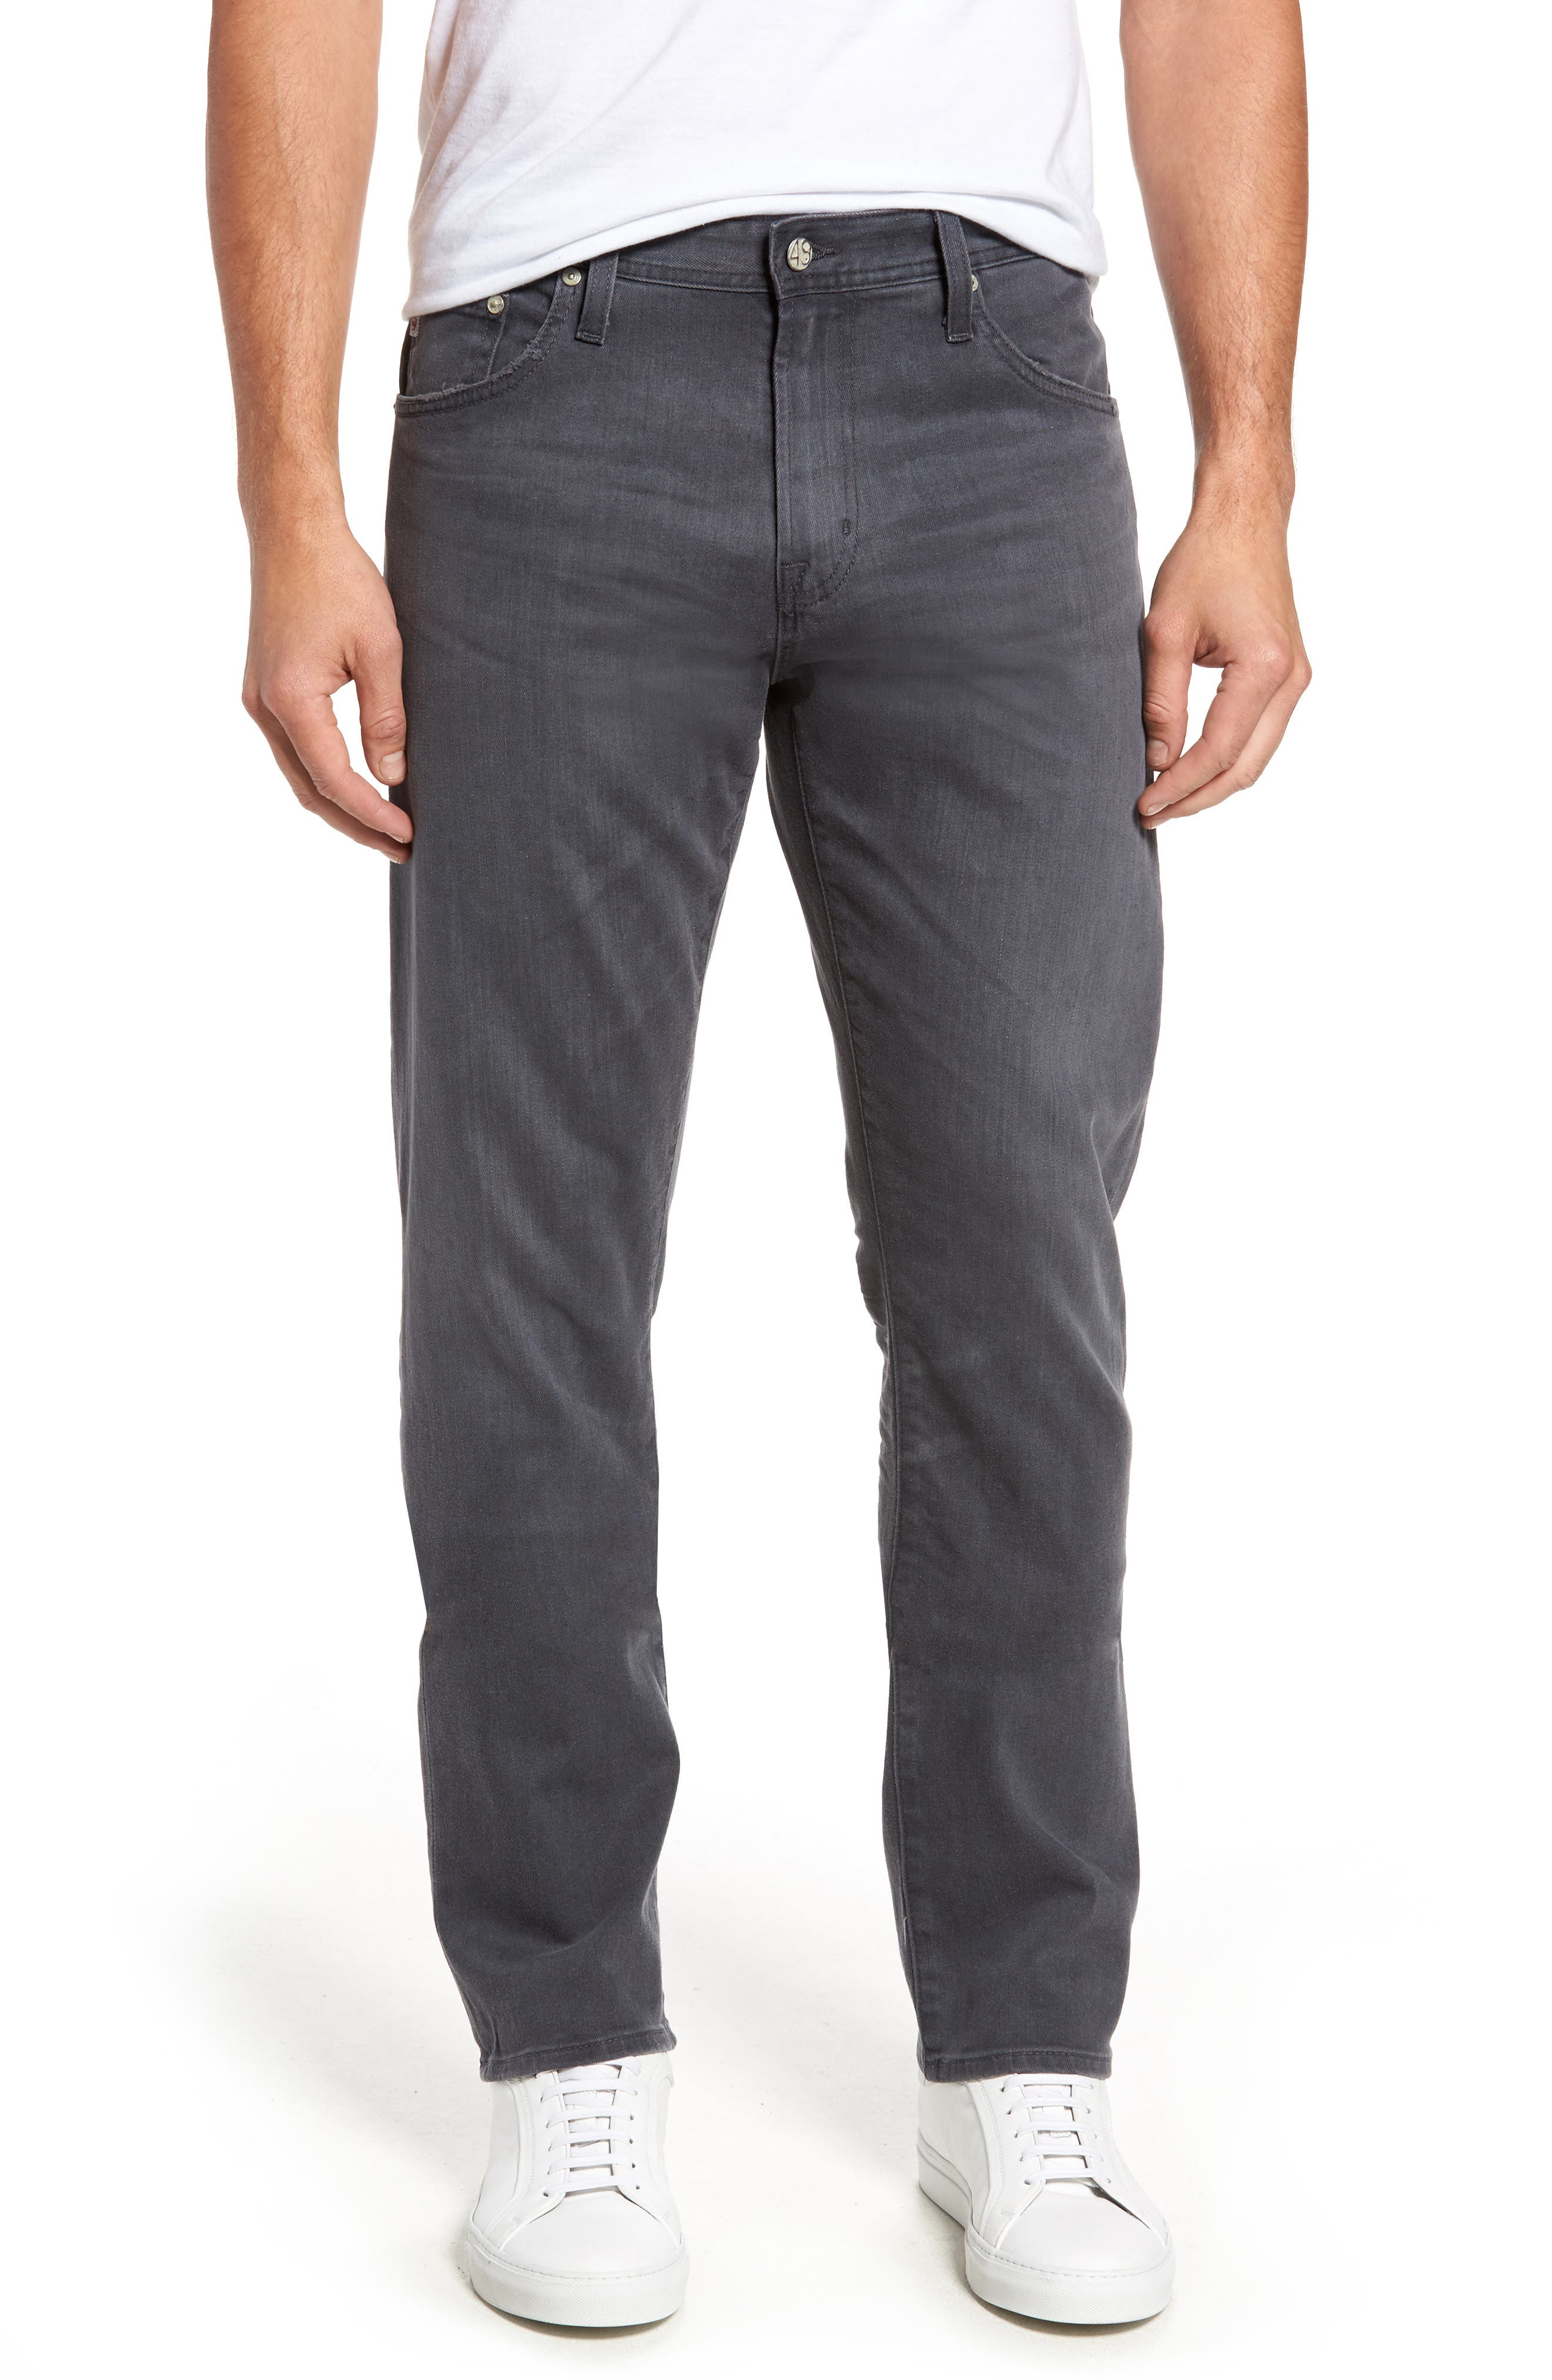 Ives Straight Leg Jeans,                         Main,                         color, 4 Years Vaulted